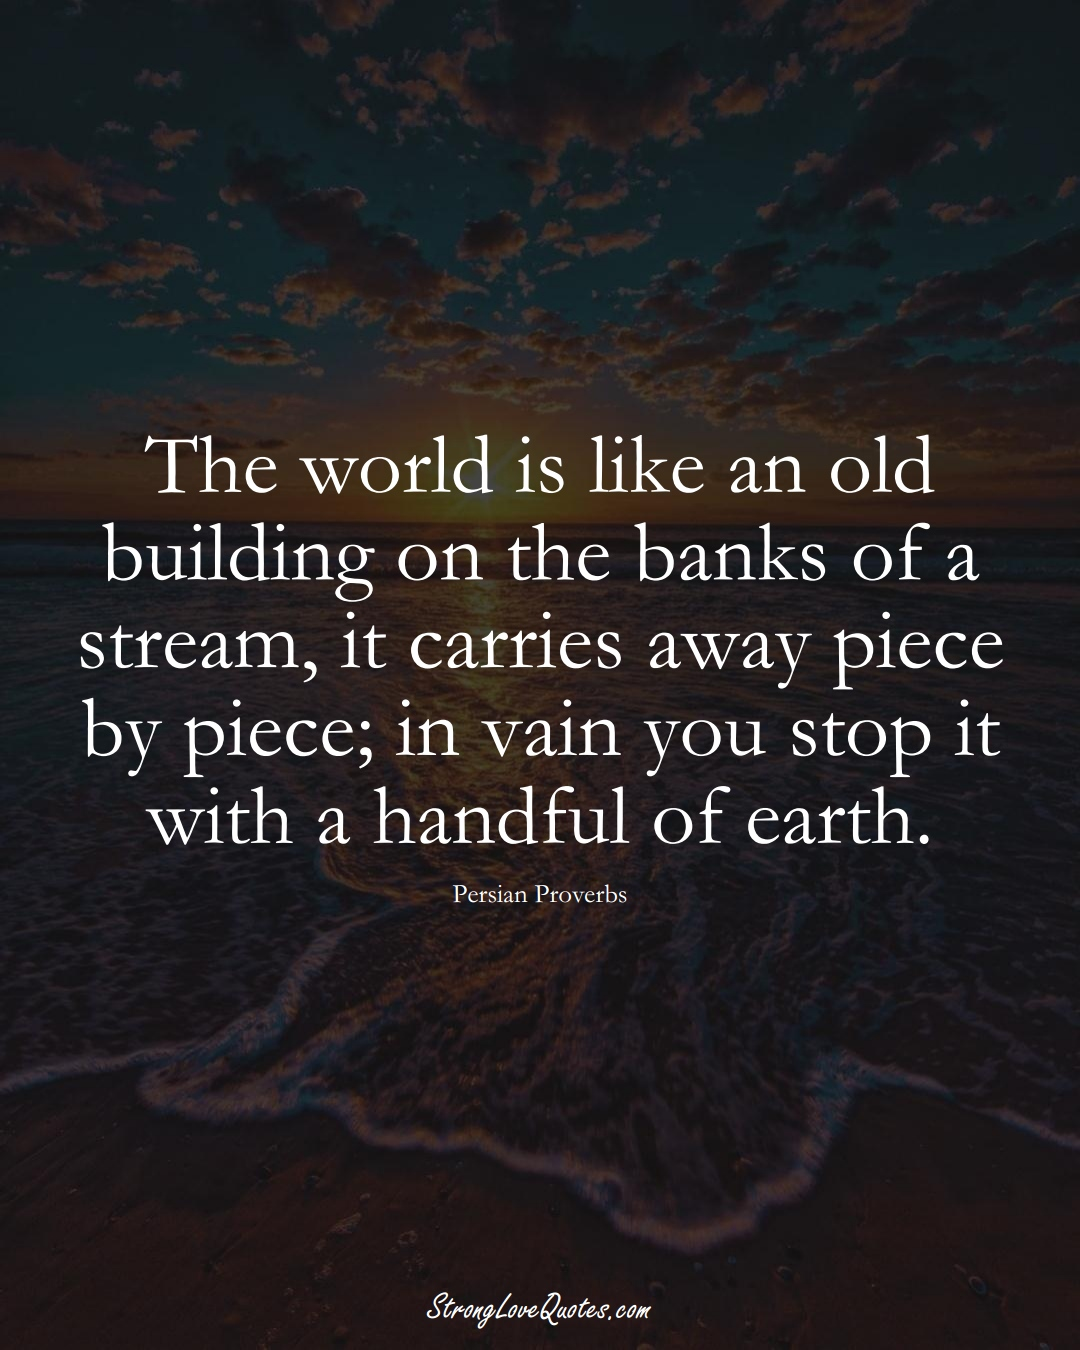 The world is like an old building on the banks of a stream, it carries away piece by piece; in vain you stop it with a handful of earth. (Persian Sayings);  #aVarietyofCulturesSayings